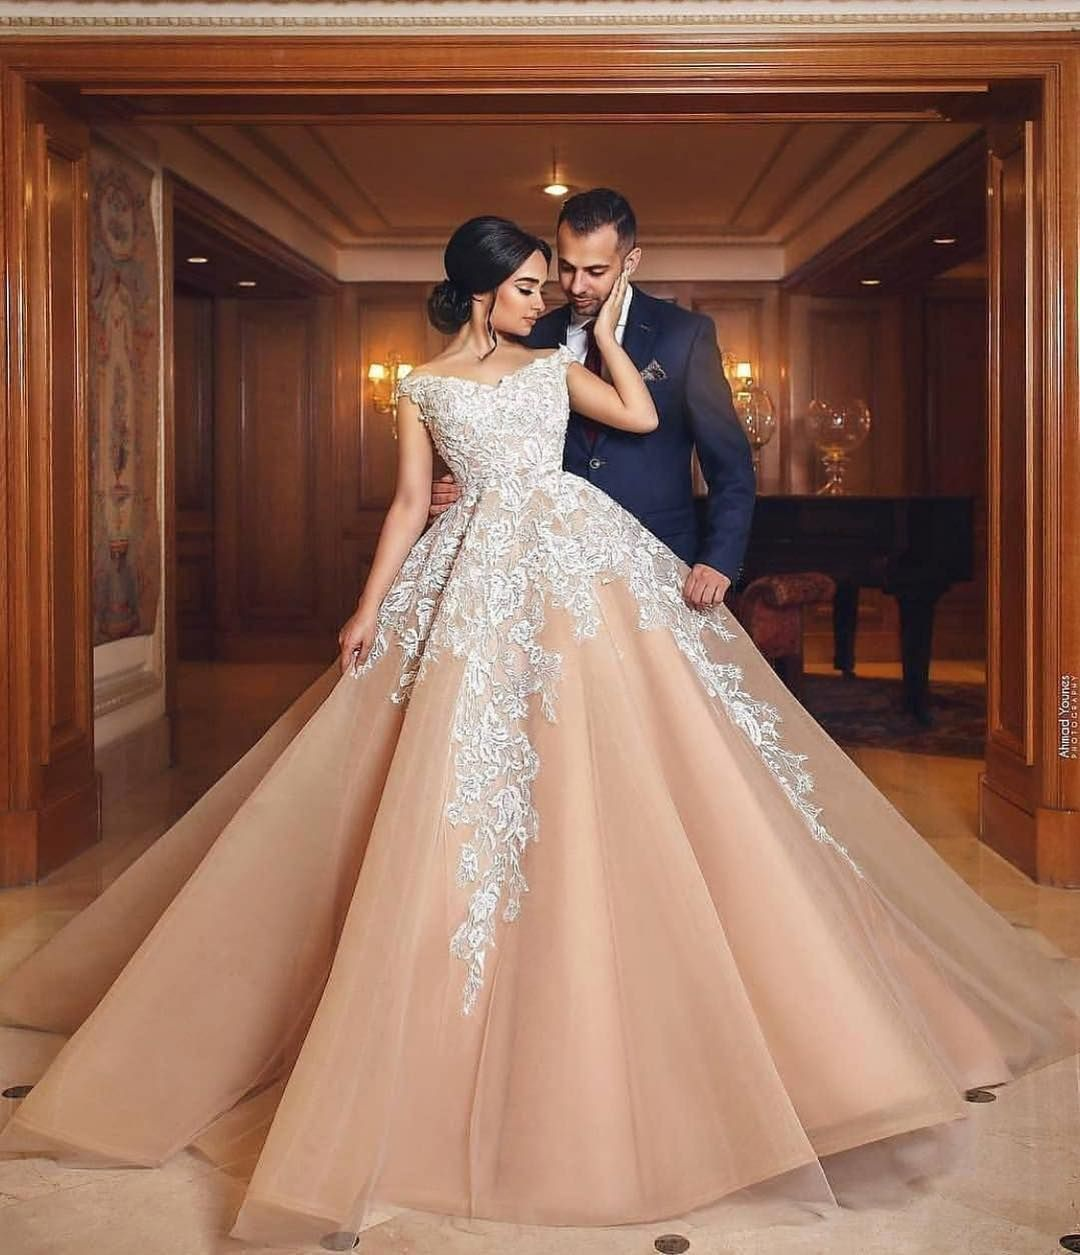 Replica Wedding Dresses from The USA